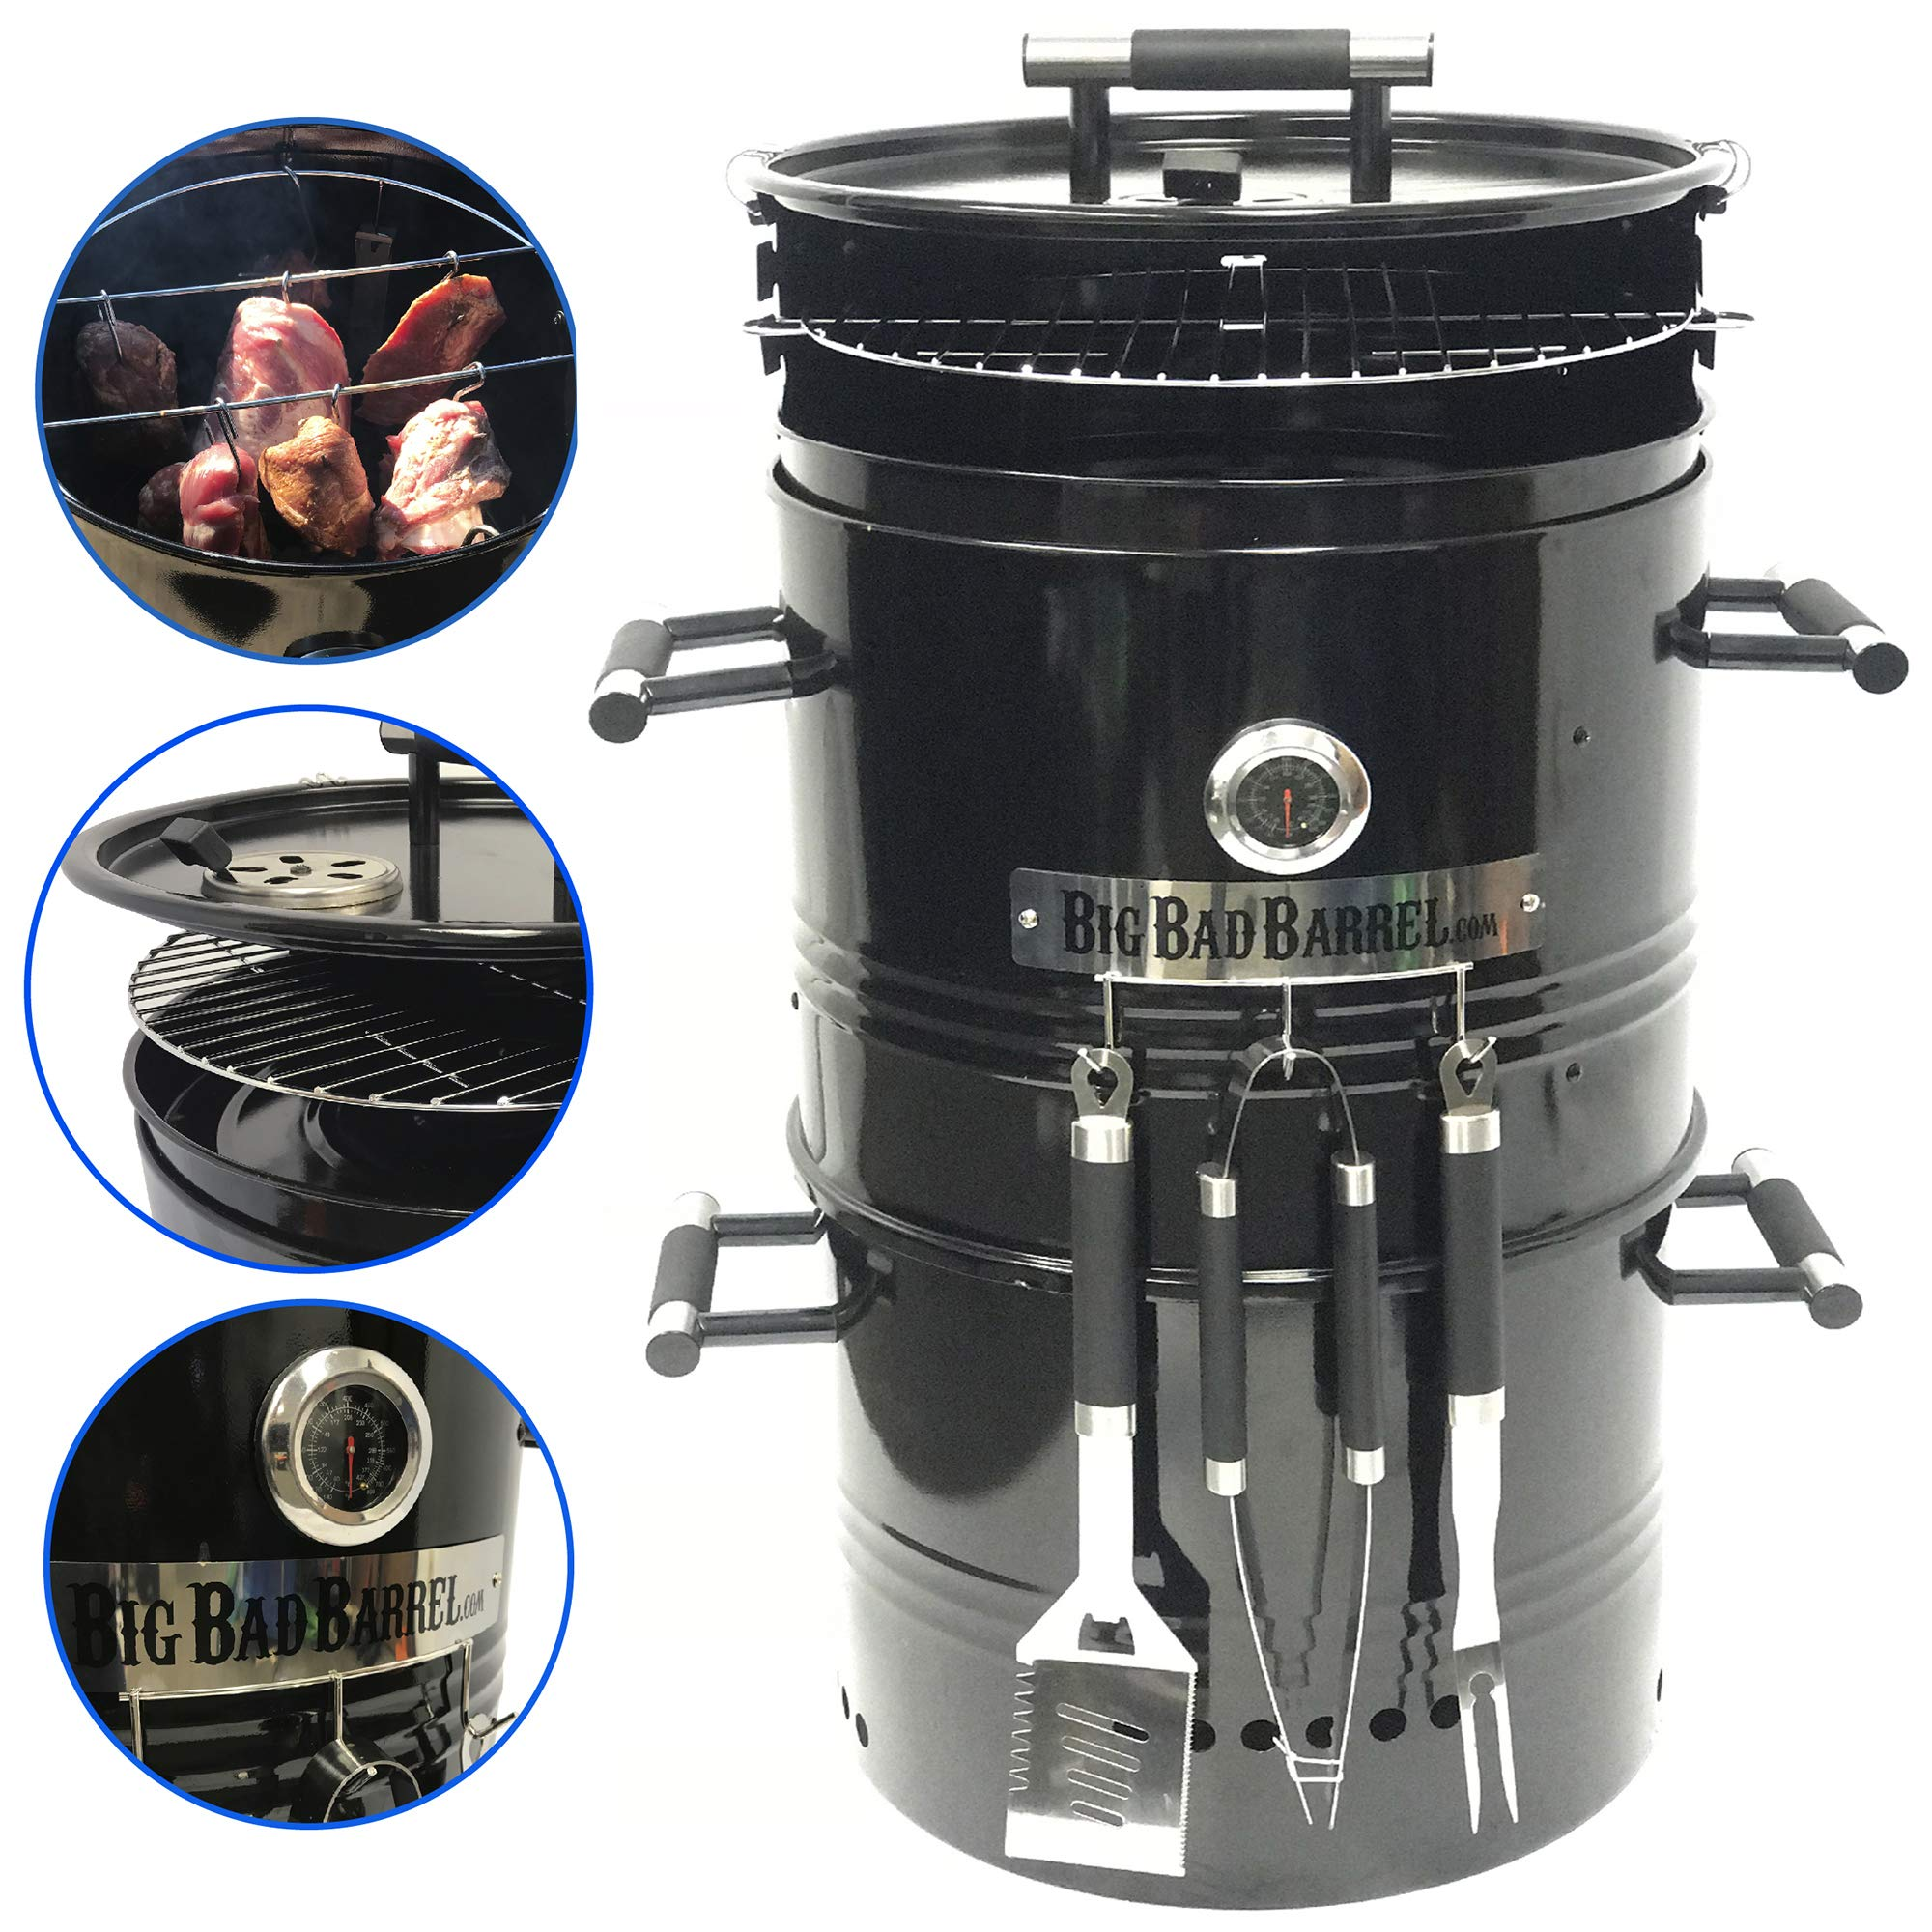 EasyGoProducts Big Bad Barrel Pit Charcoal Barbeque 5 in 1 Can be Used as a Smoker Grill BBQ, Pizza Oven, Table & Fire Pit.18-Inch Diameter-3 pcs Tool, Set by EasyGoProducts